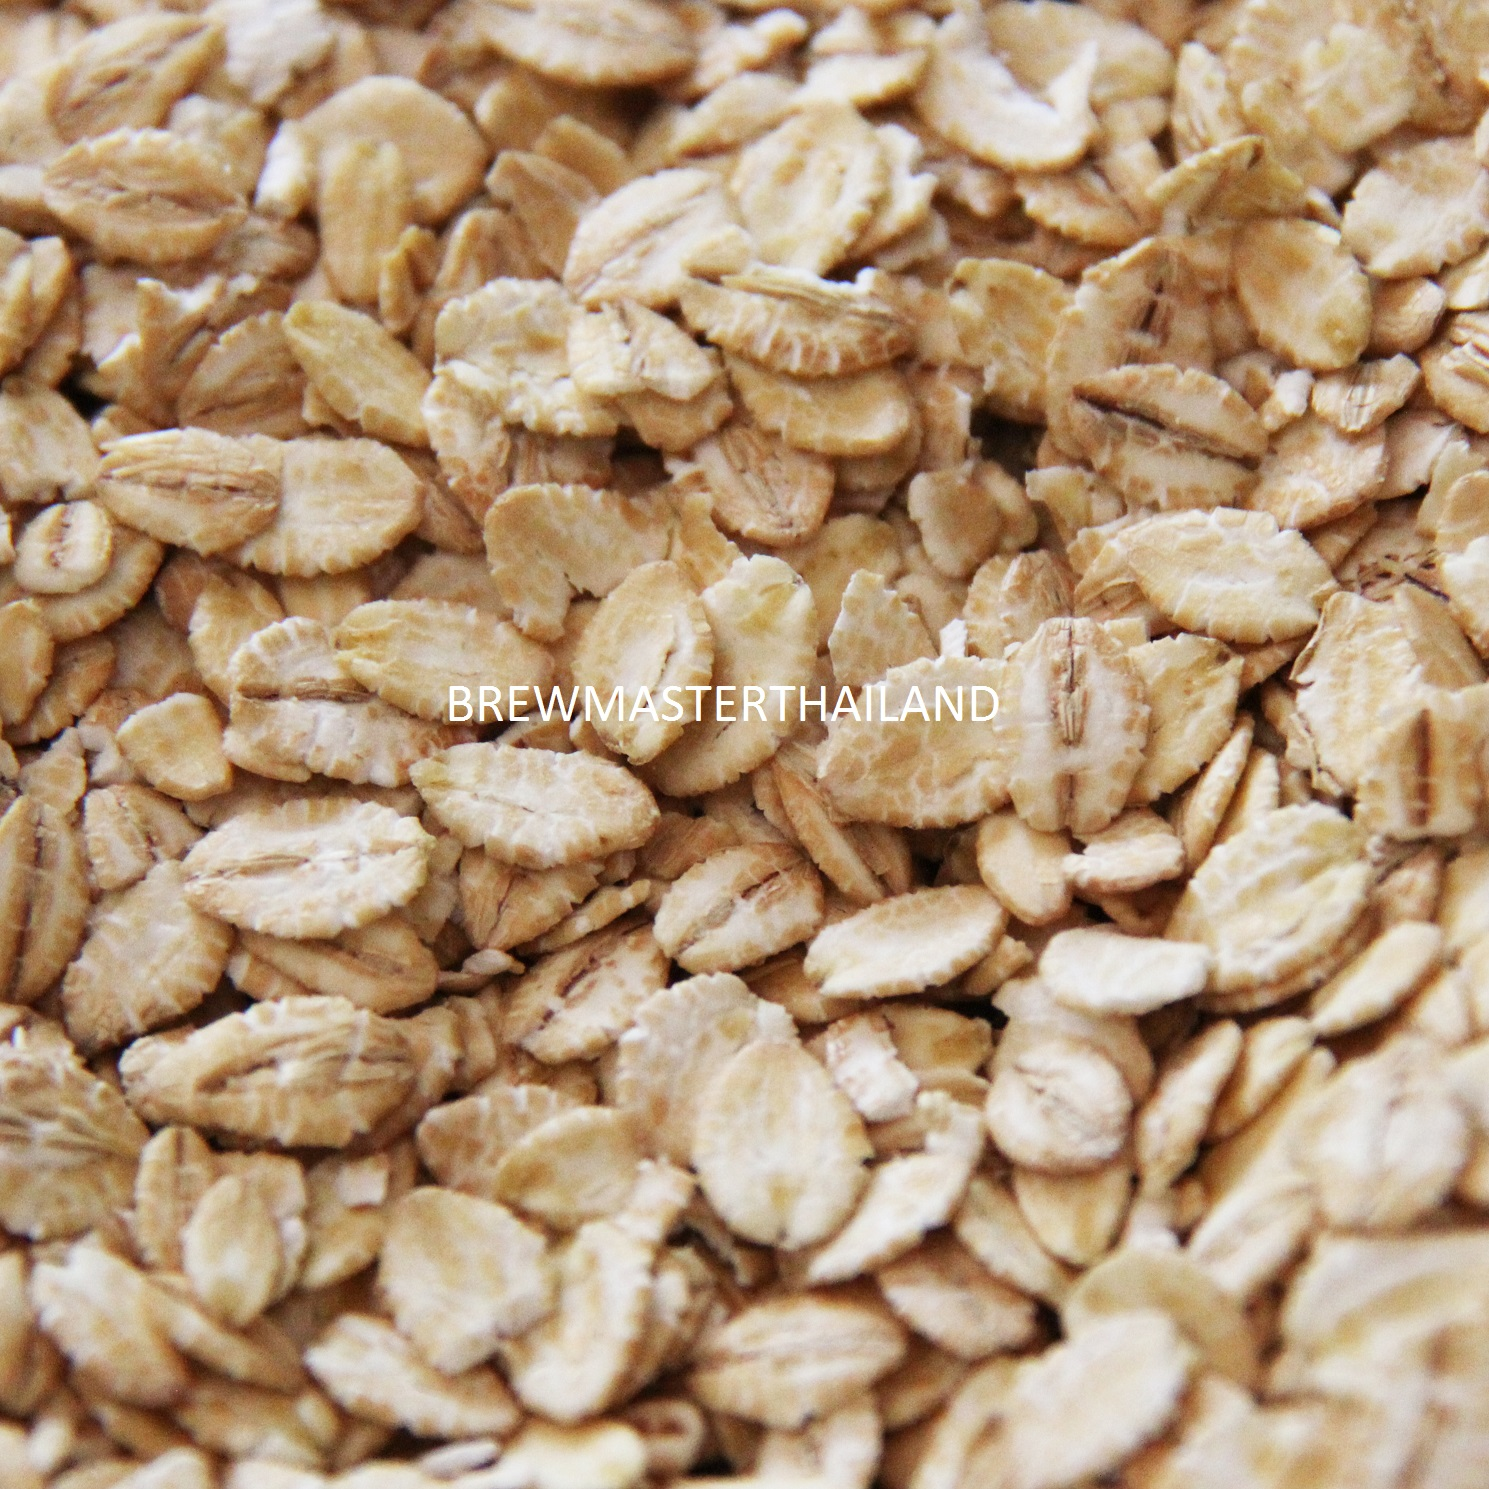 Flaked Barley (2lbs) - Product of Australia